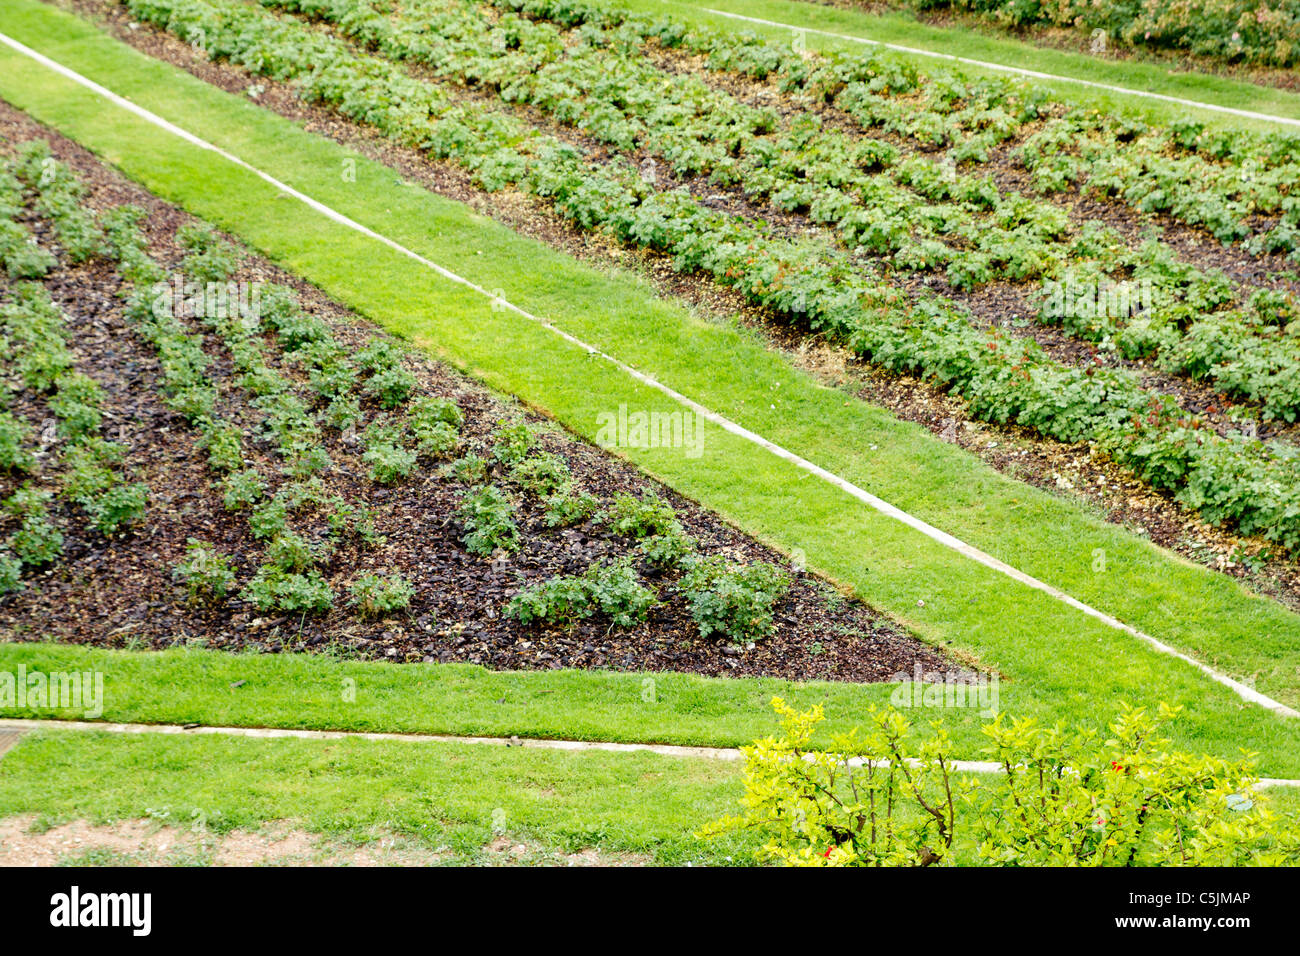 angle shape grass way in green garden from elevated view - Stock Image